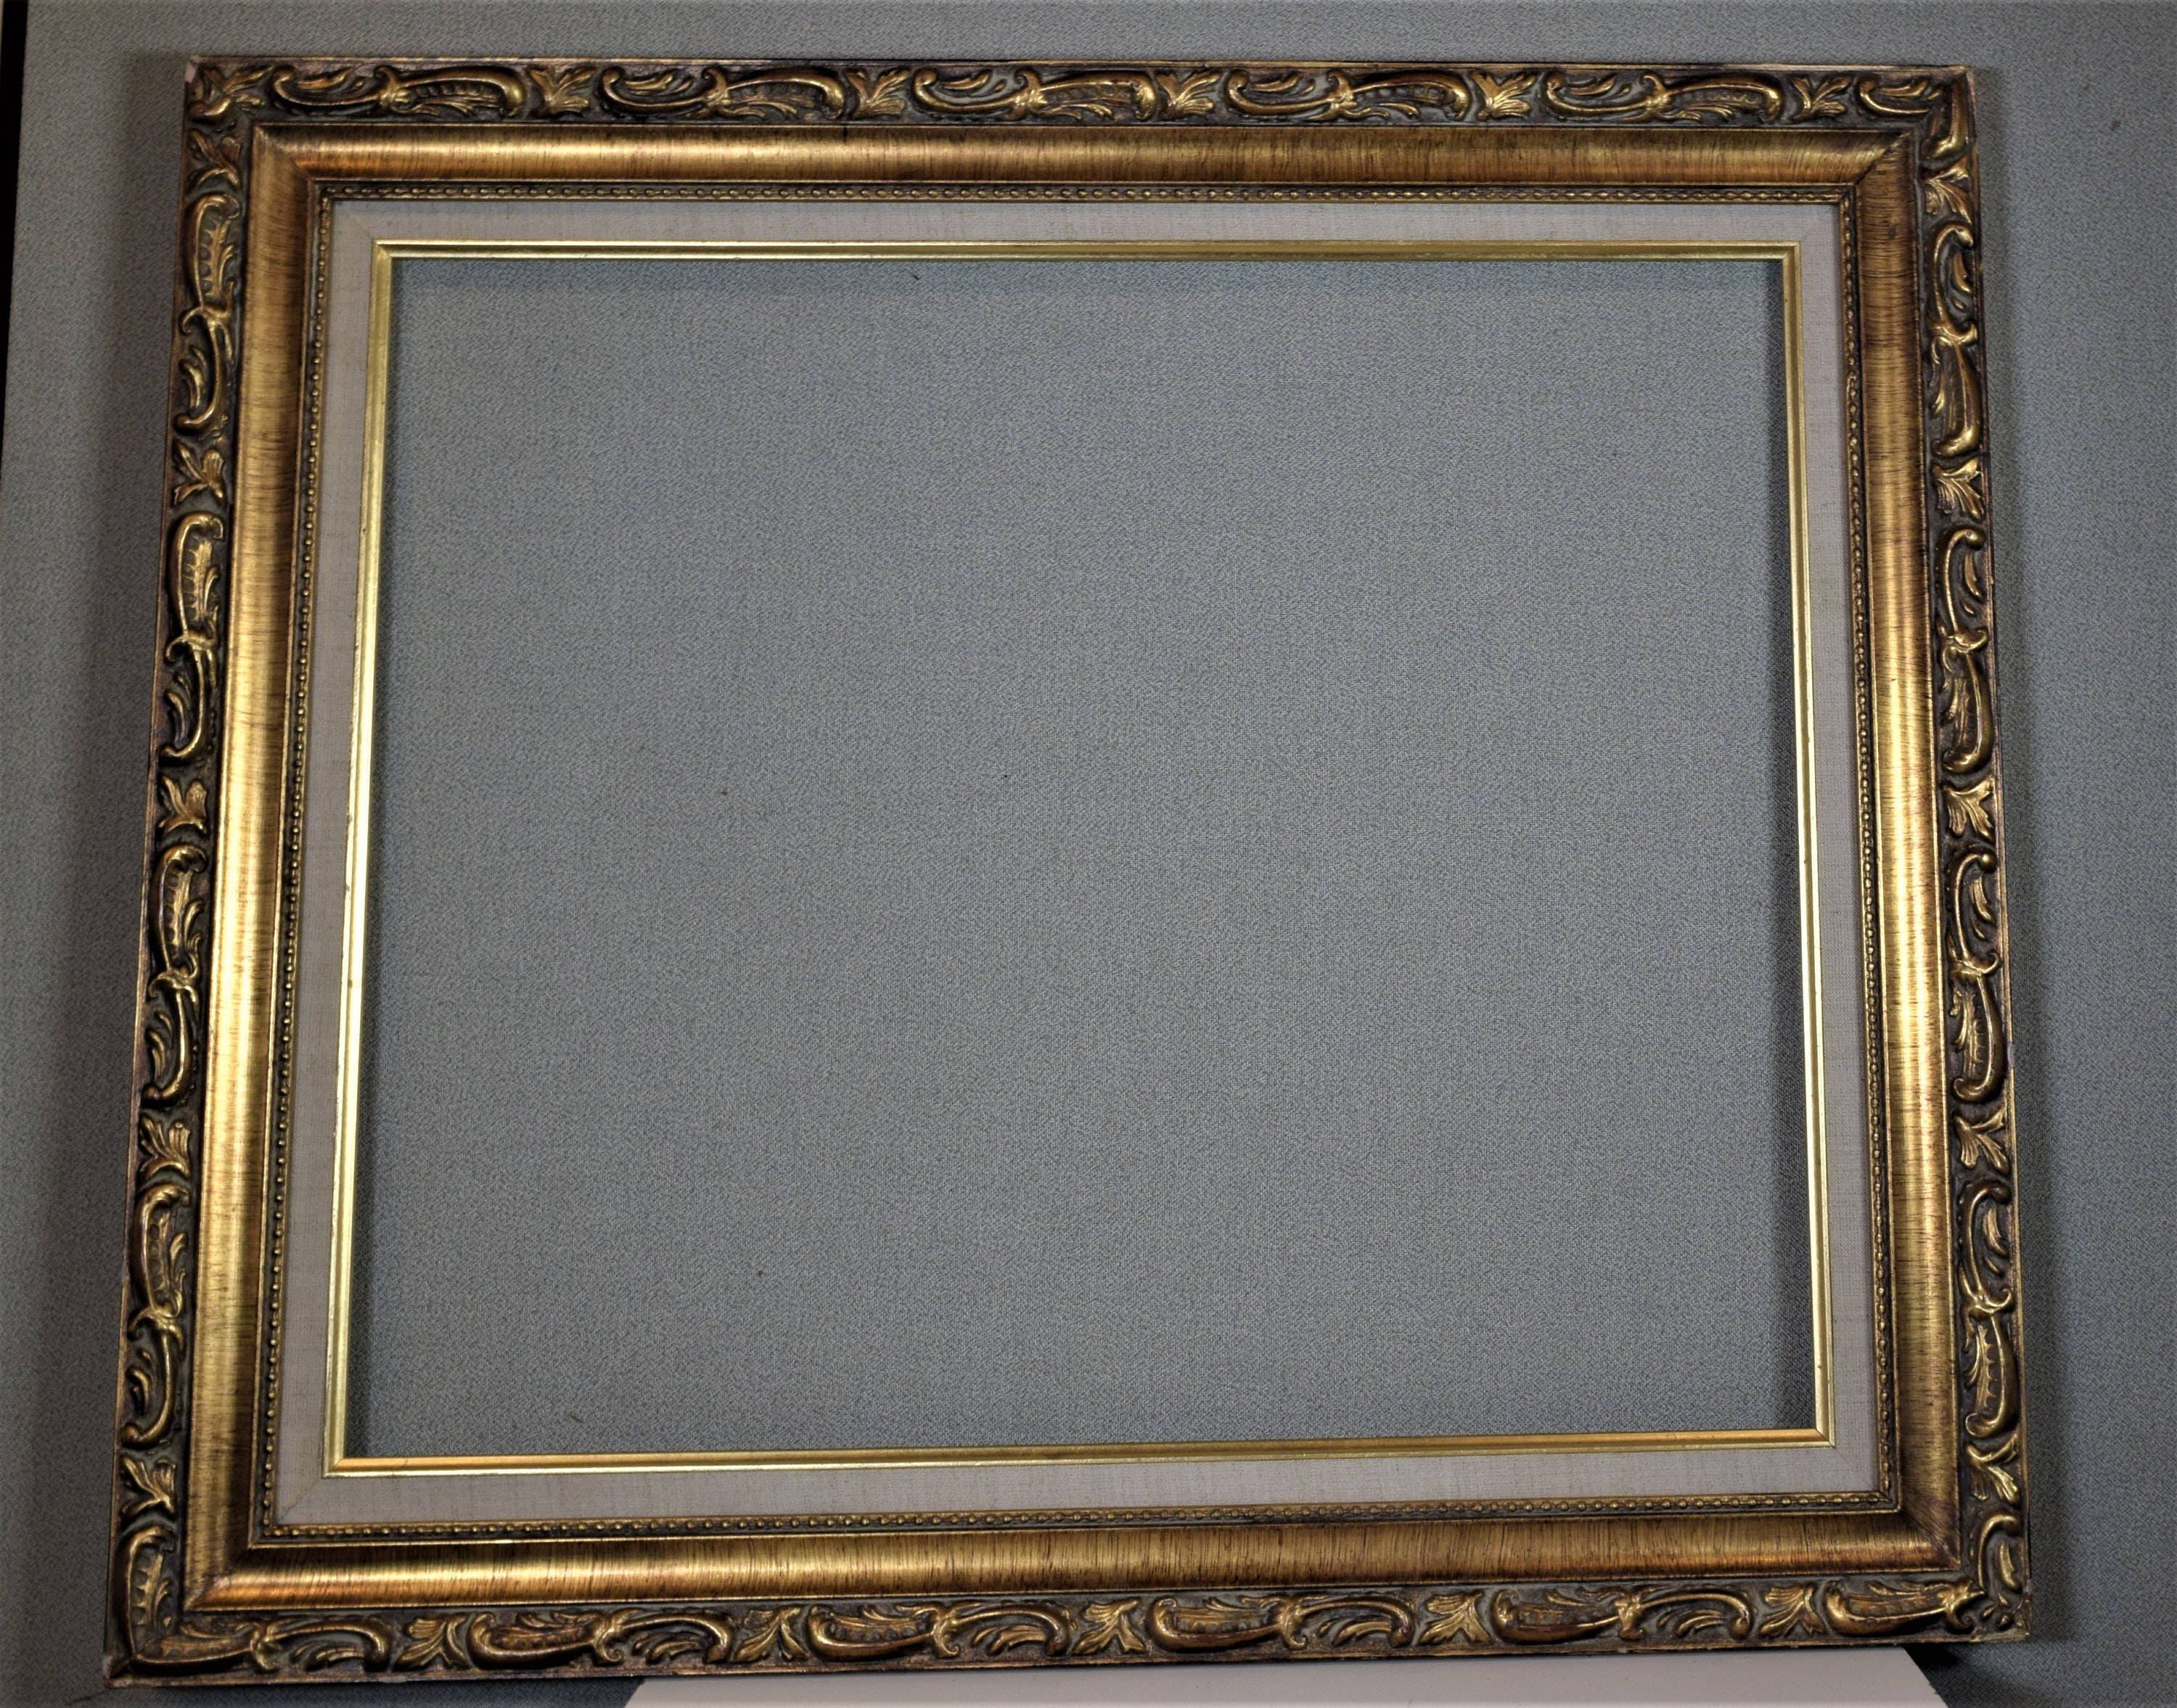 frameprintwarehouse frames picture listing wood with il fullxfull wide raw mats frame hardwood unfinished mat by sold